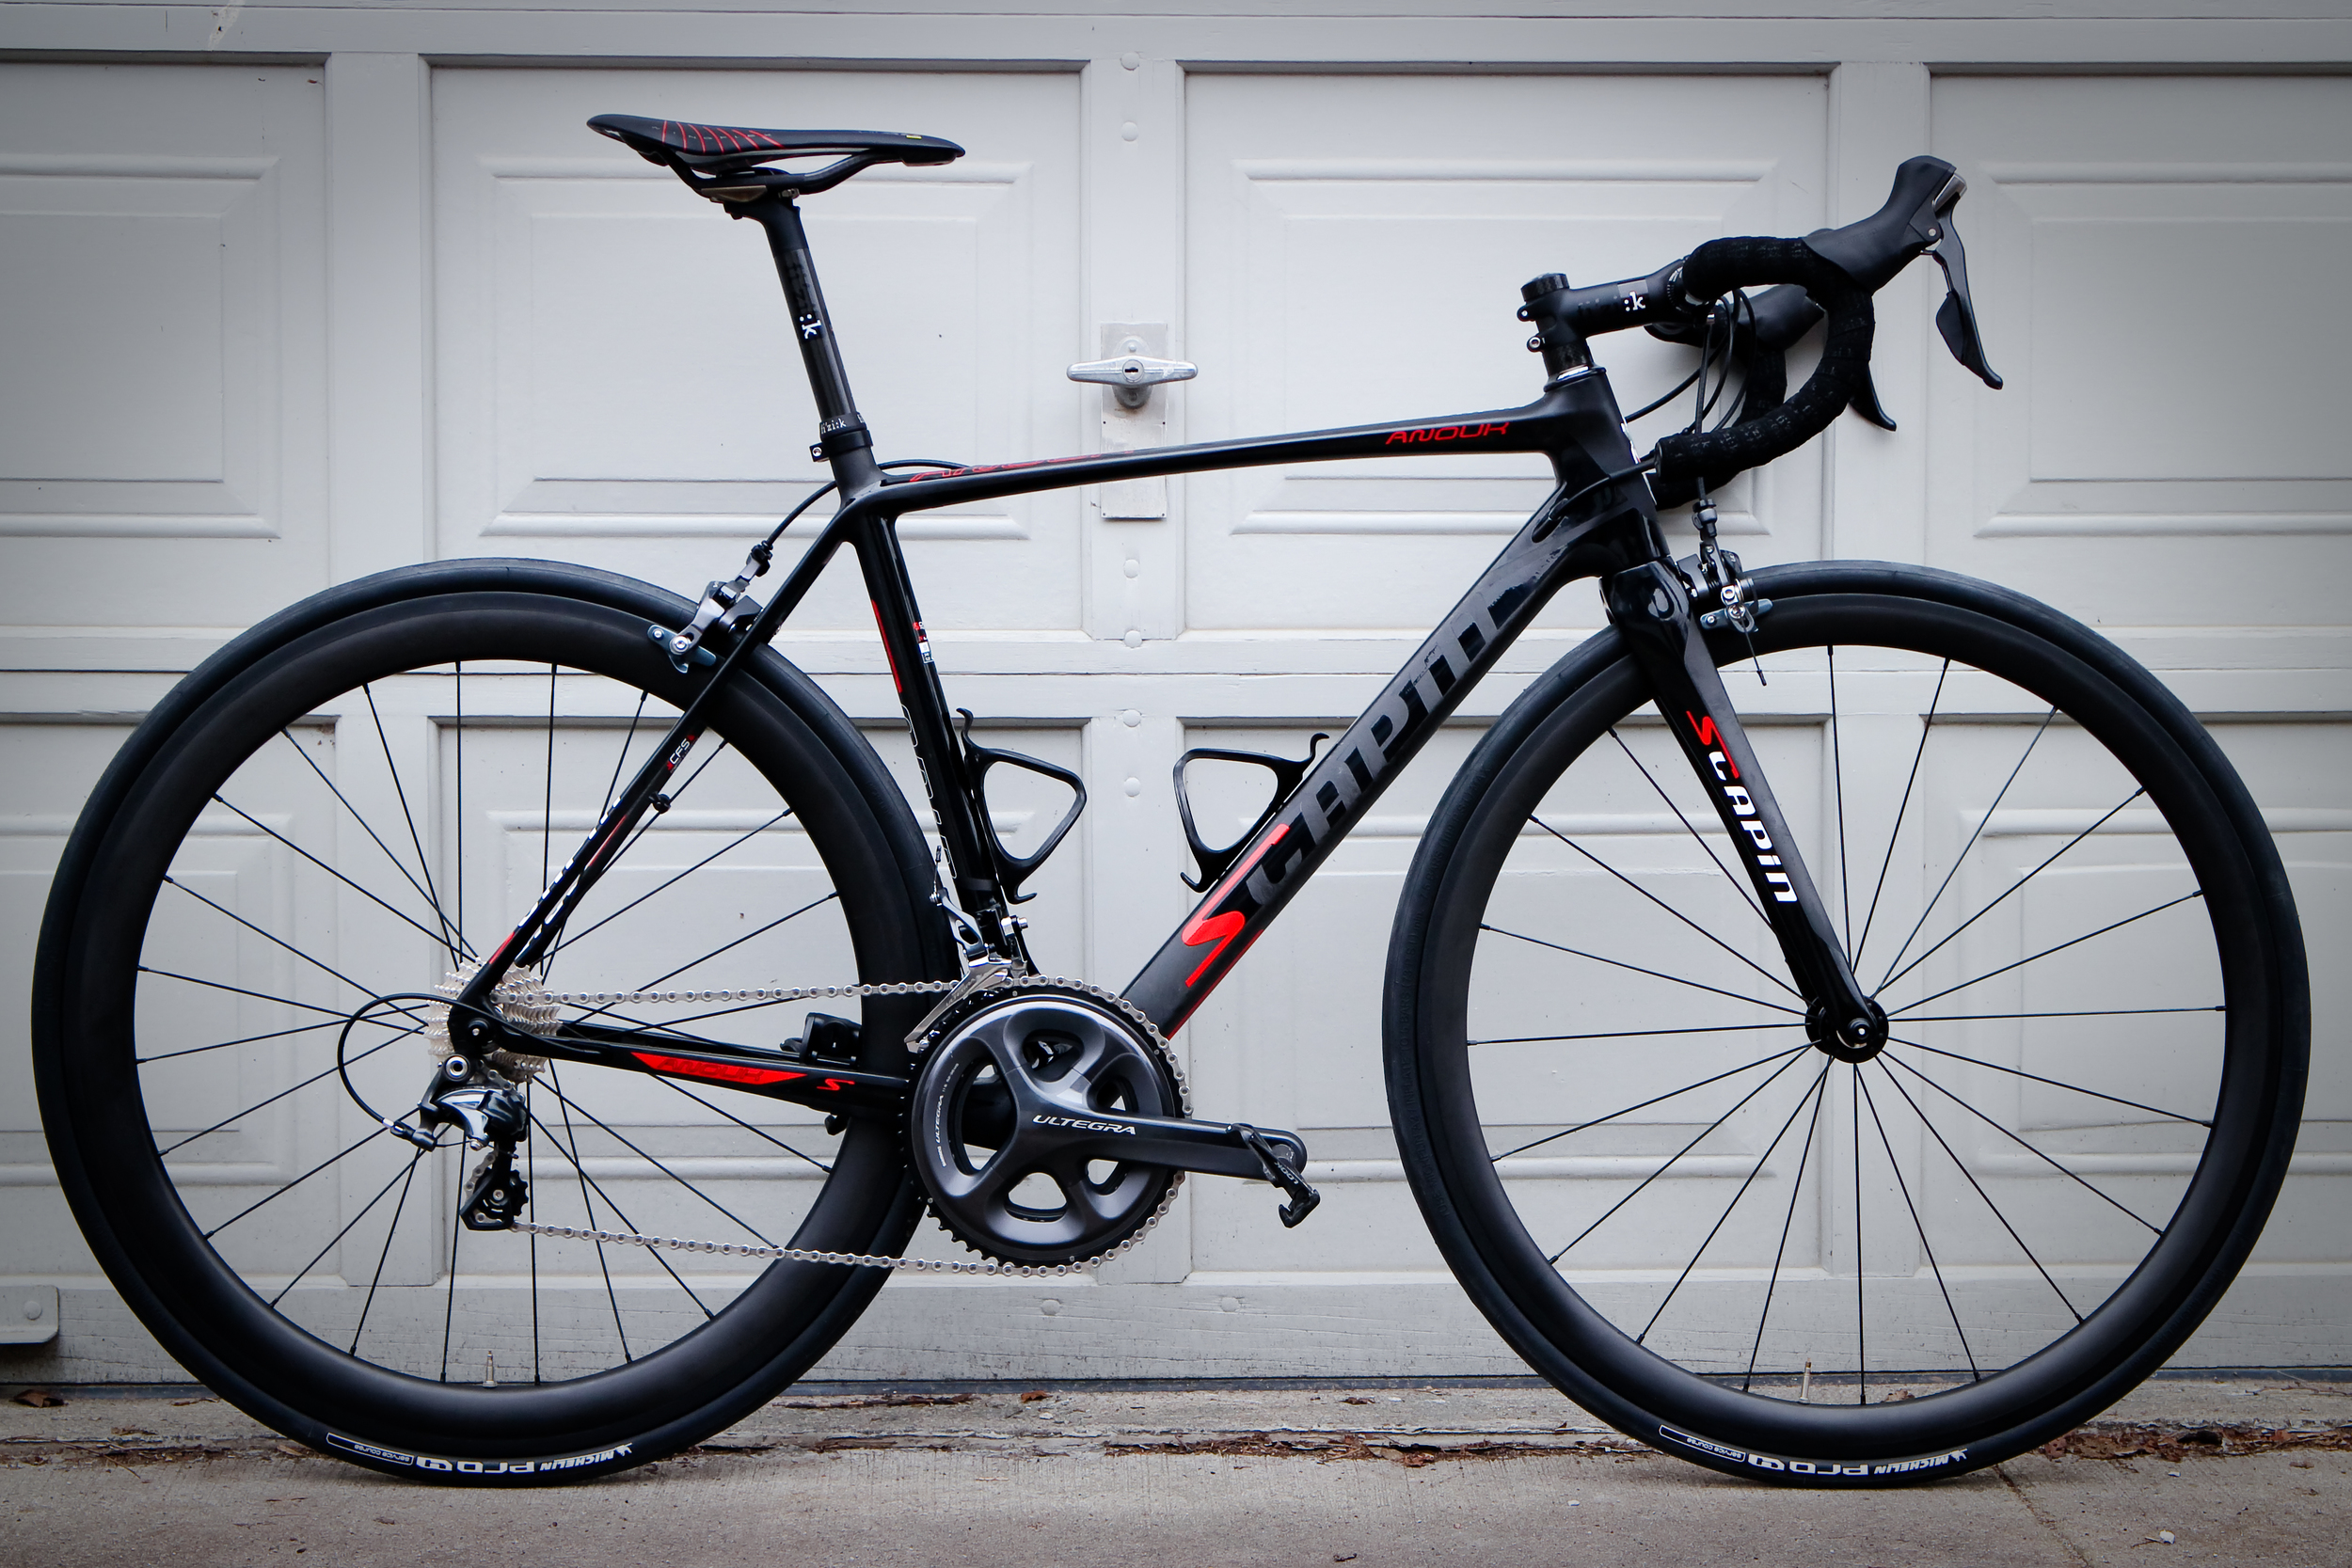 Yishun carbon 38/55mm U-shape carbon clinchers on the Scapin Anouk